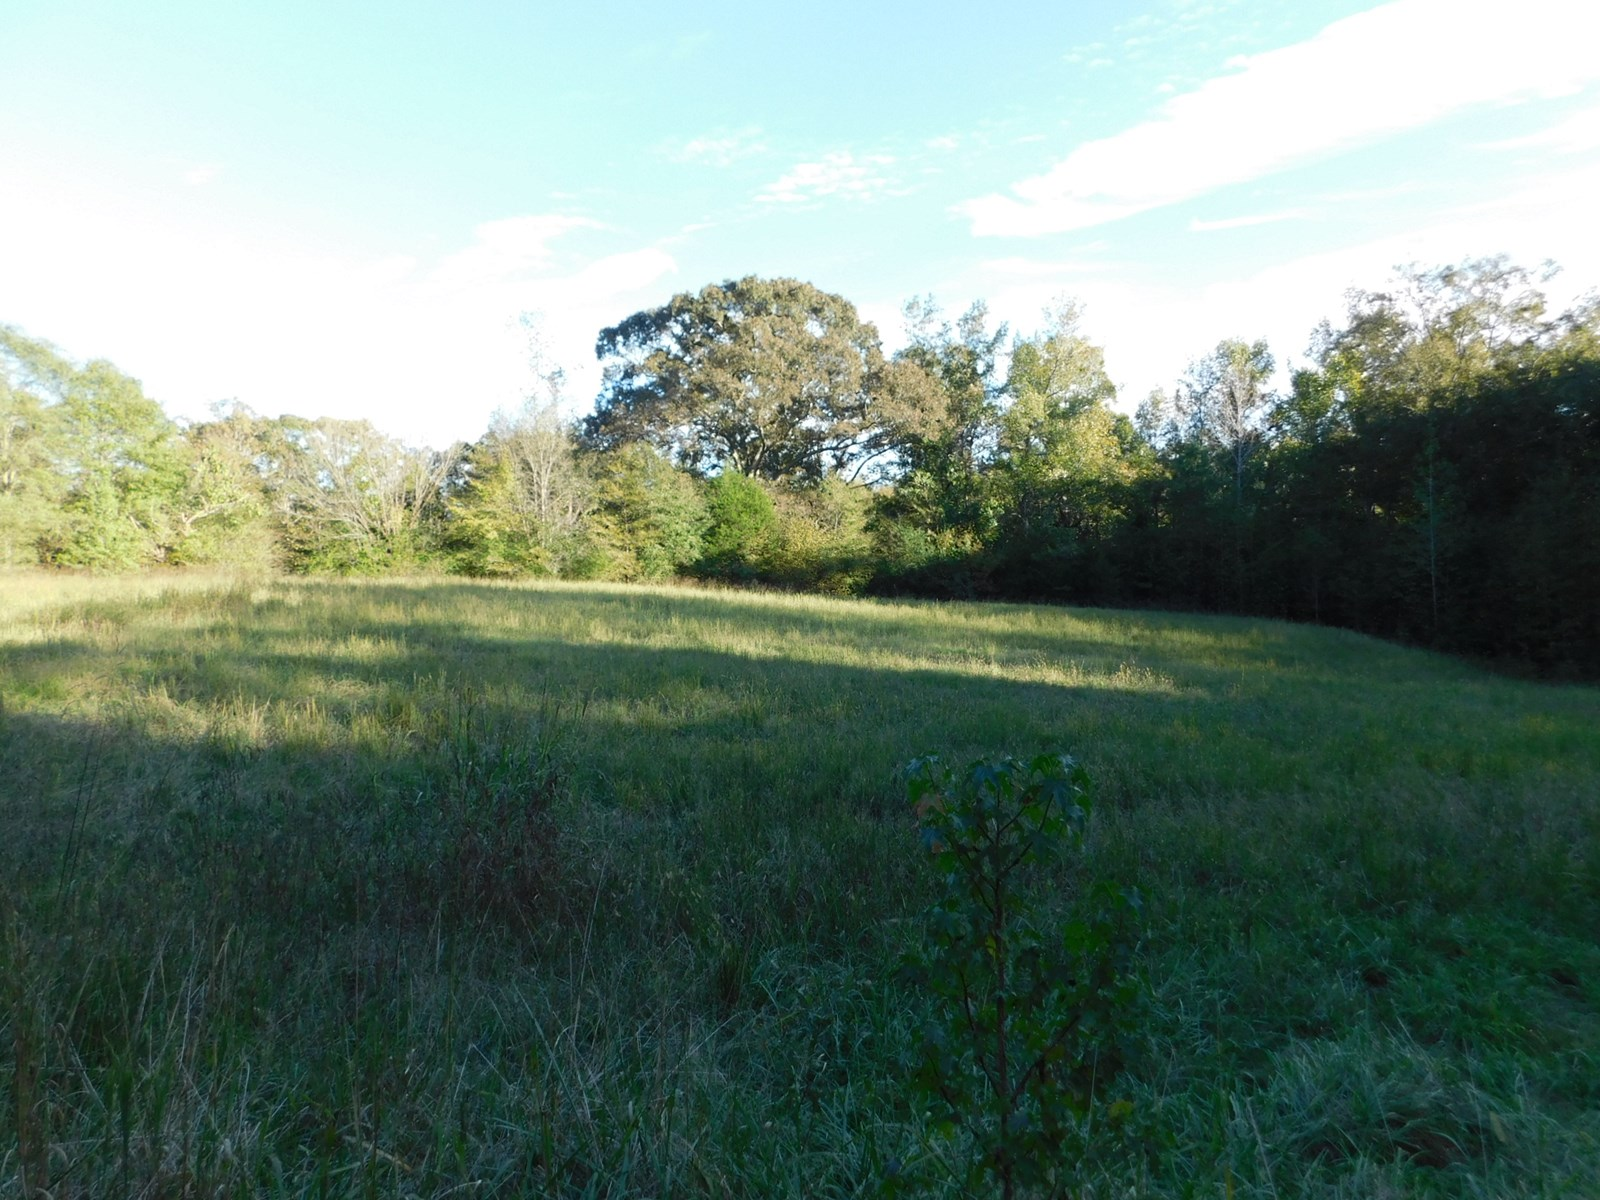 FARM FOR SALE IN TN FENCING, TIMBER, HORSES, CATTLE, HUNTING